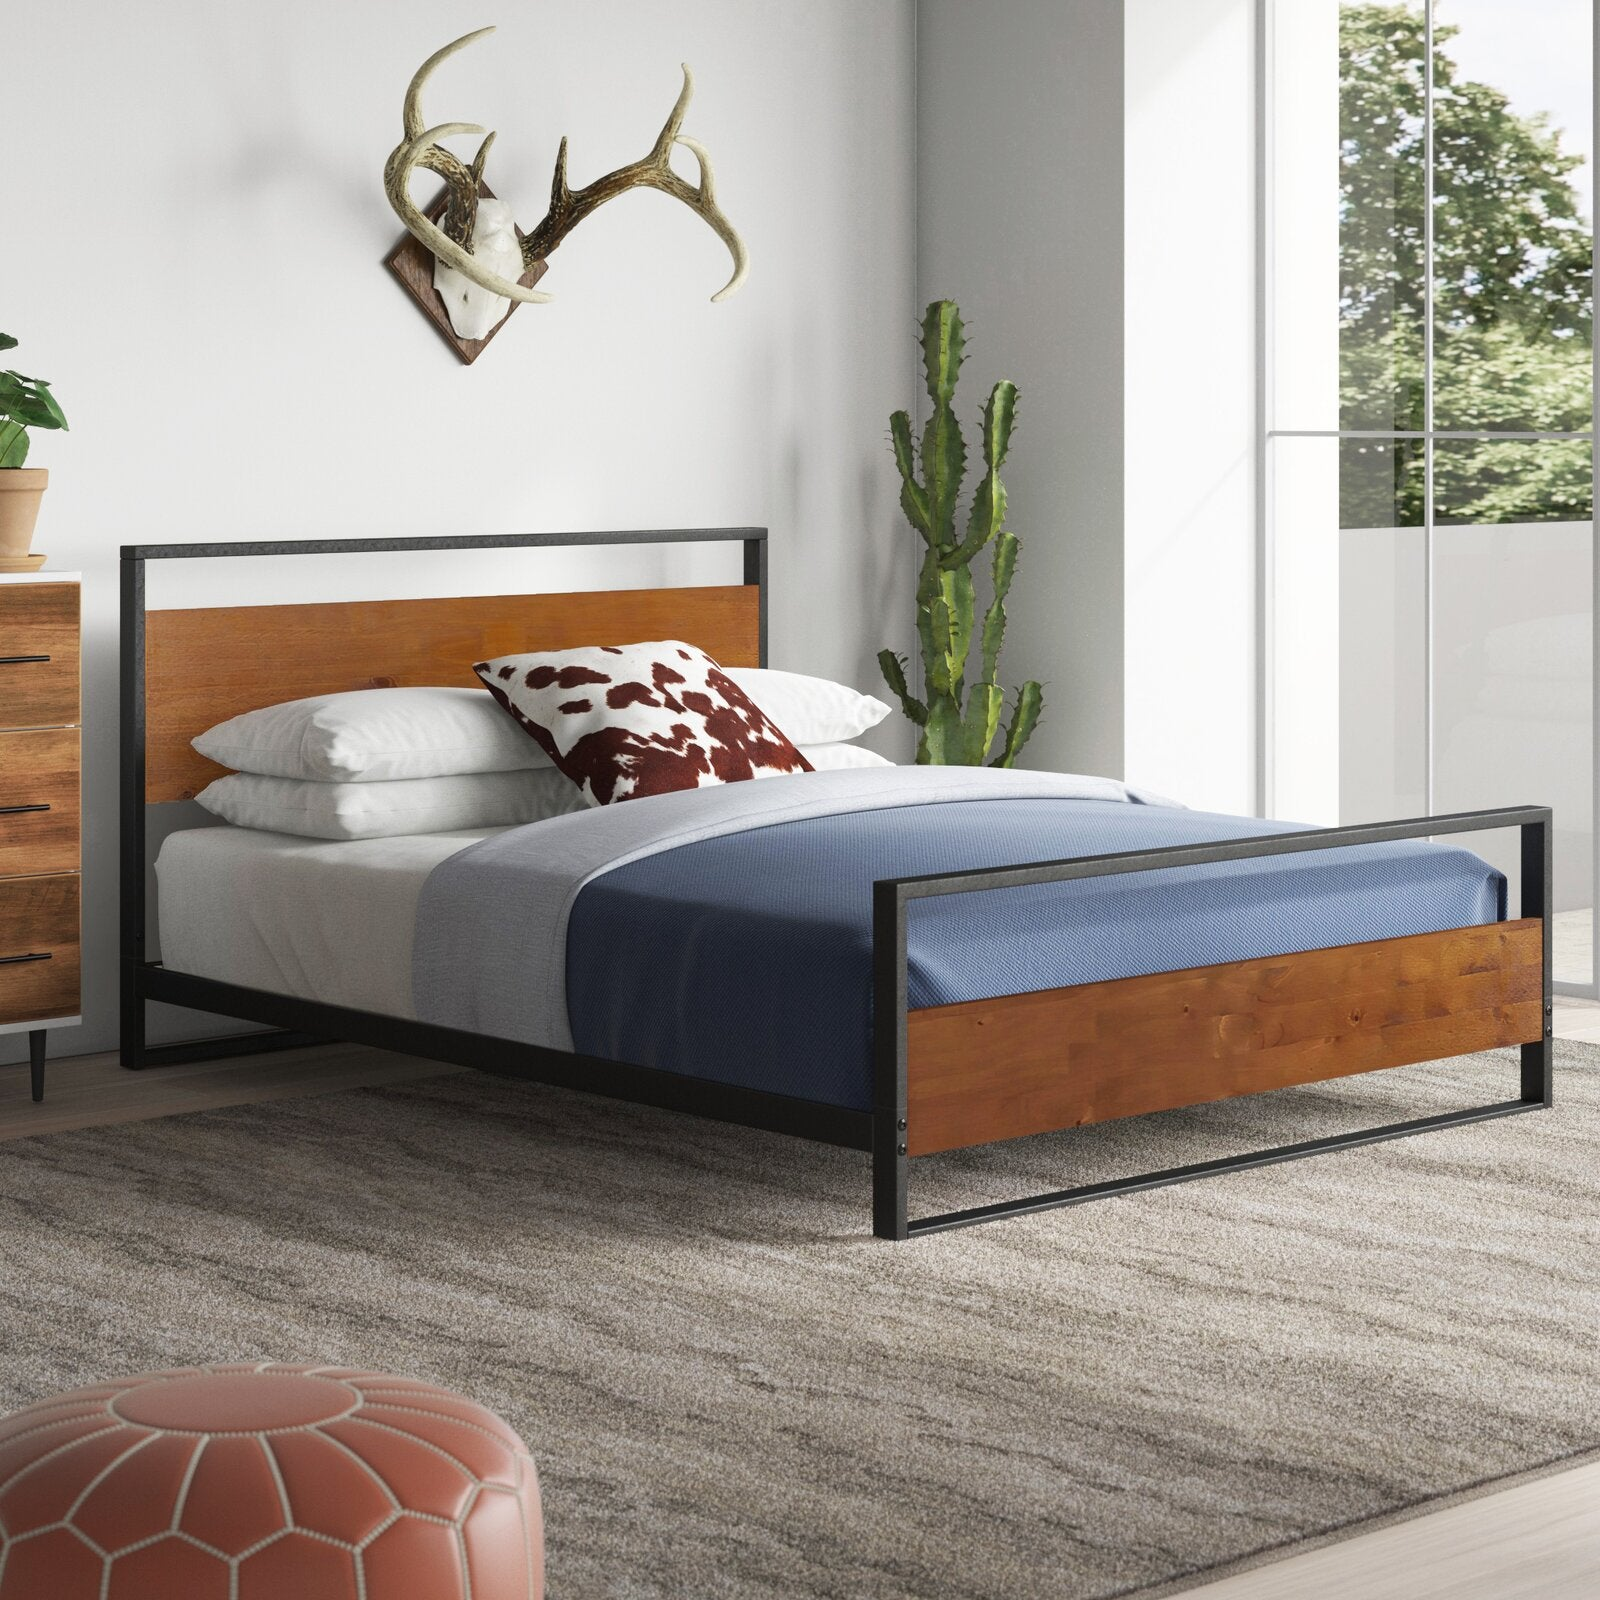 Zinus Suzanne Metal And Pine Wood Platform Bed Frame With